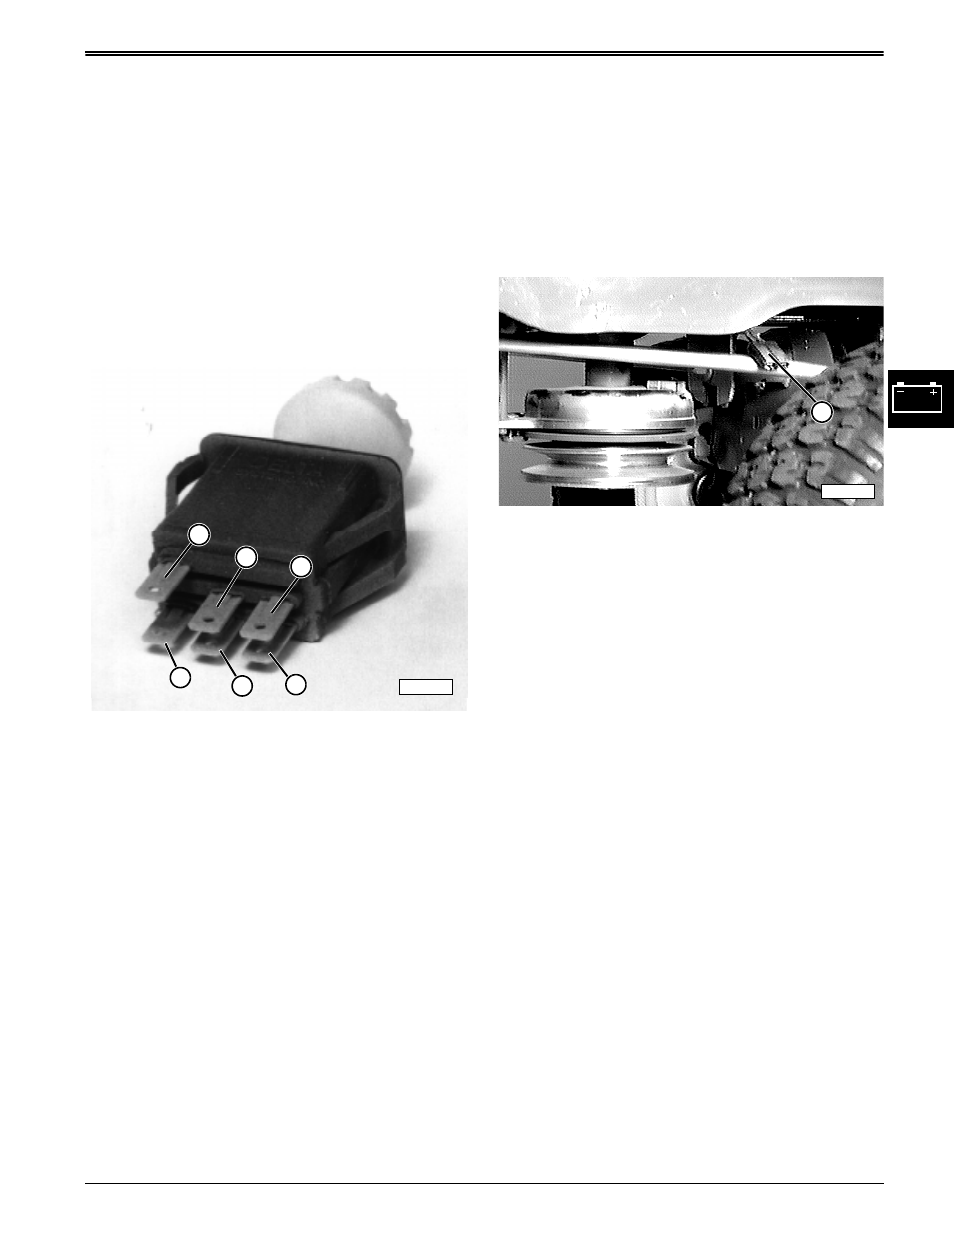 John Deere Stx30 Wiring Diagram 31 Images Pto Clutch Stx38 Page155resize6652c861 Sophisticated Electric